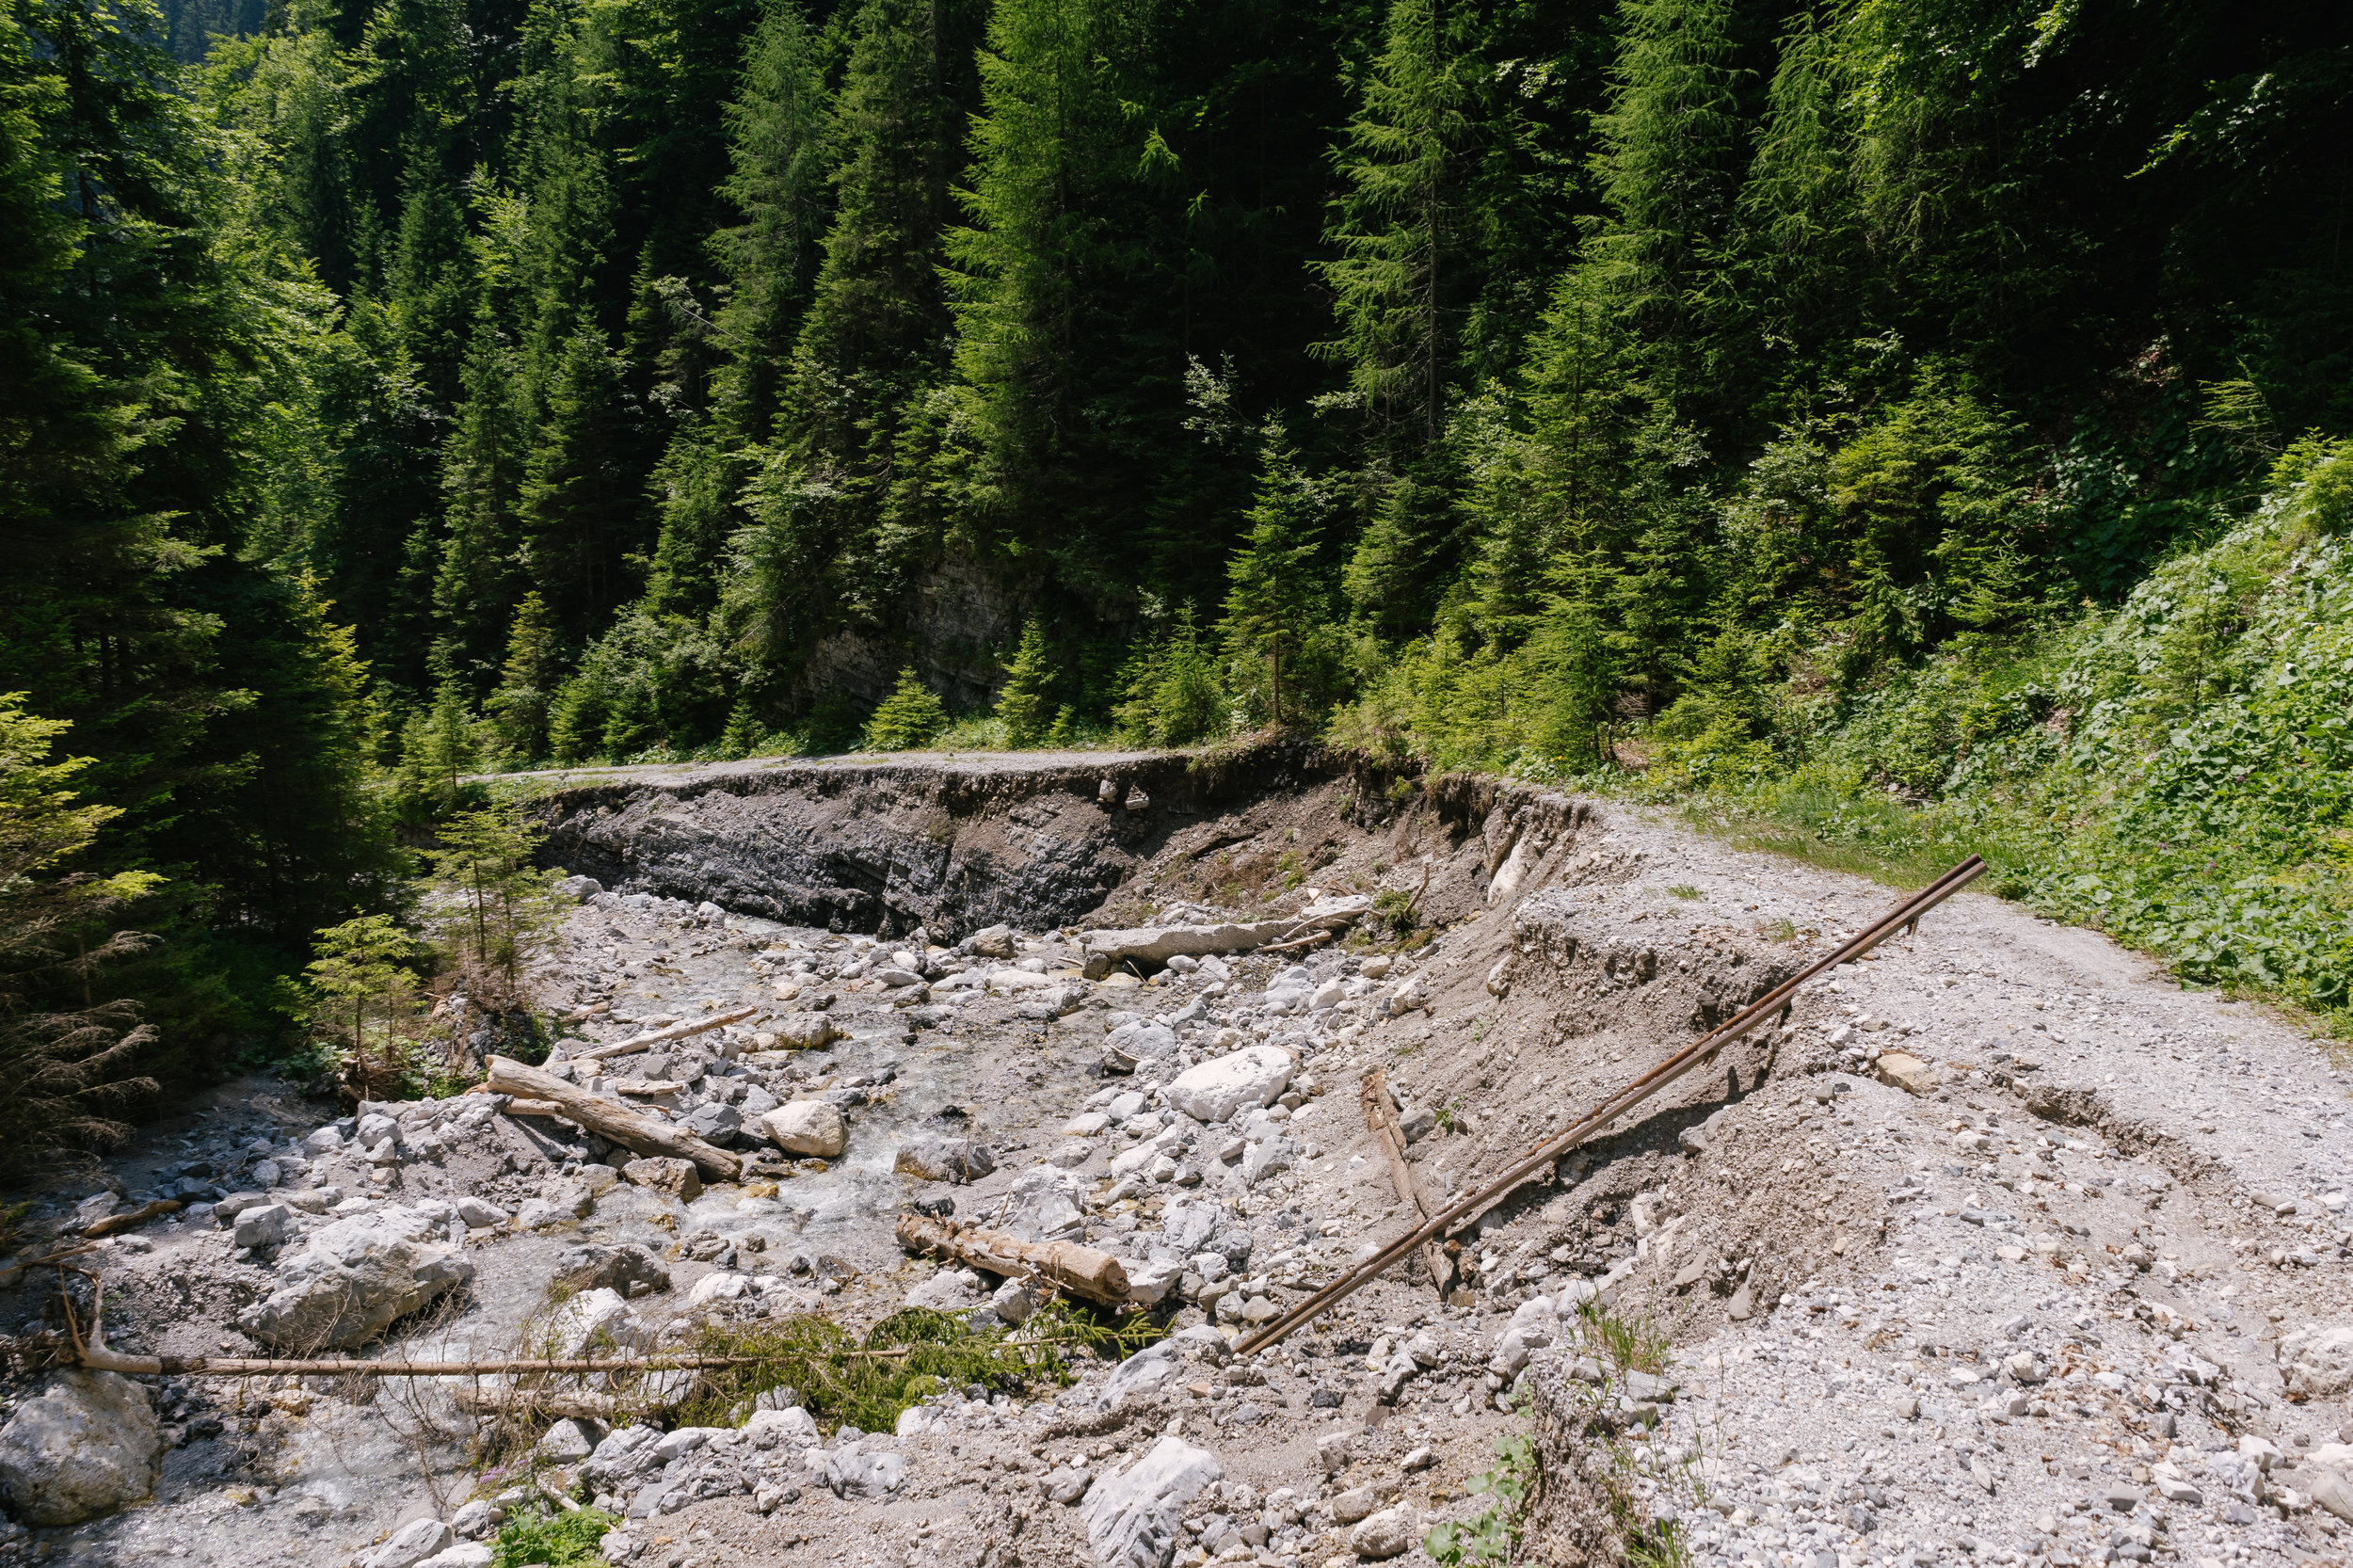 There were some heavy storms this year. When there is a lot of water, mountain roads can get demolished.